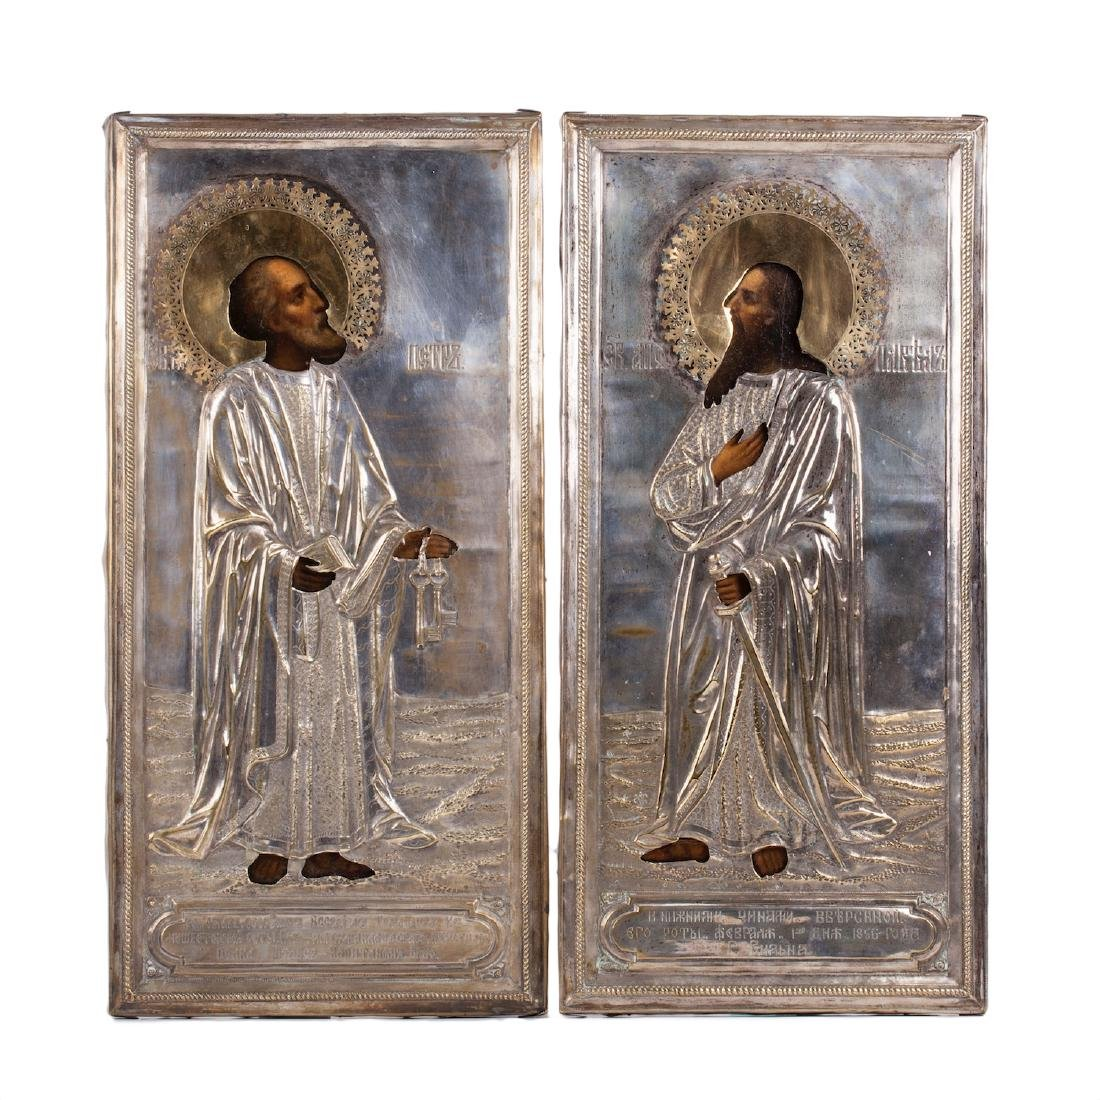 Pair of icons of Saints Peter and Paul